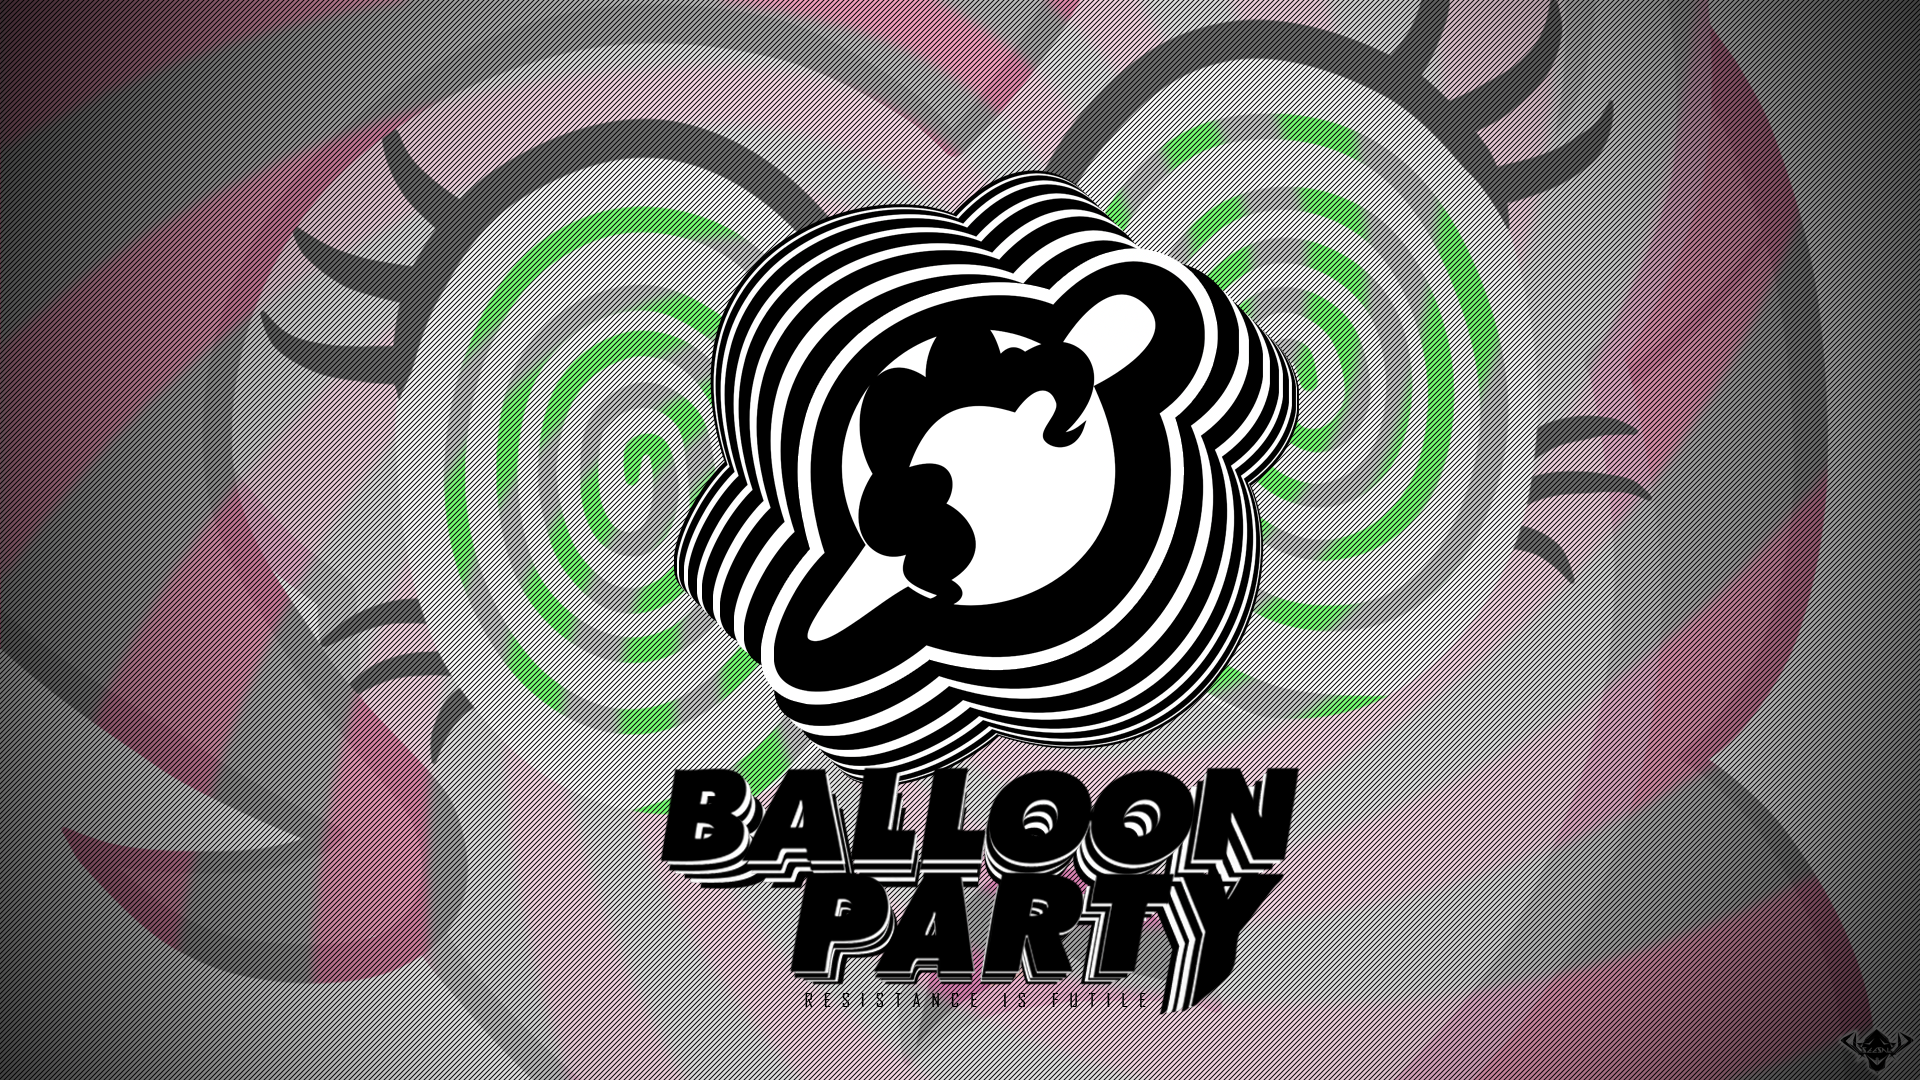 Balloon Party Hypnosis Wallpaper by Astanine and Tomchambo